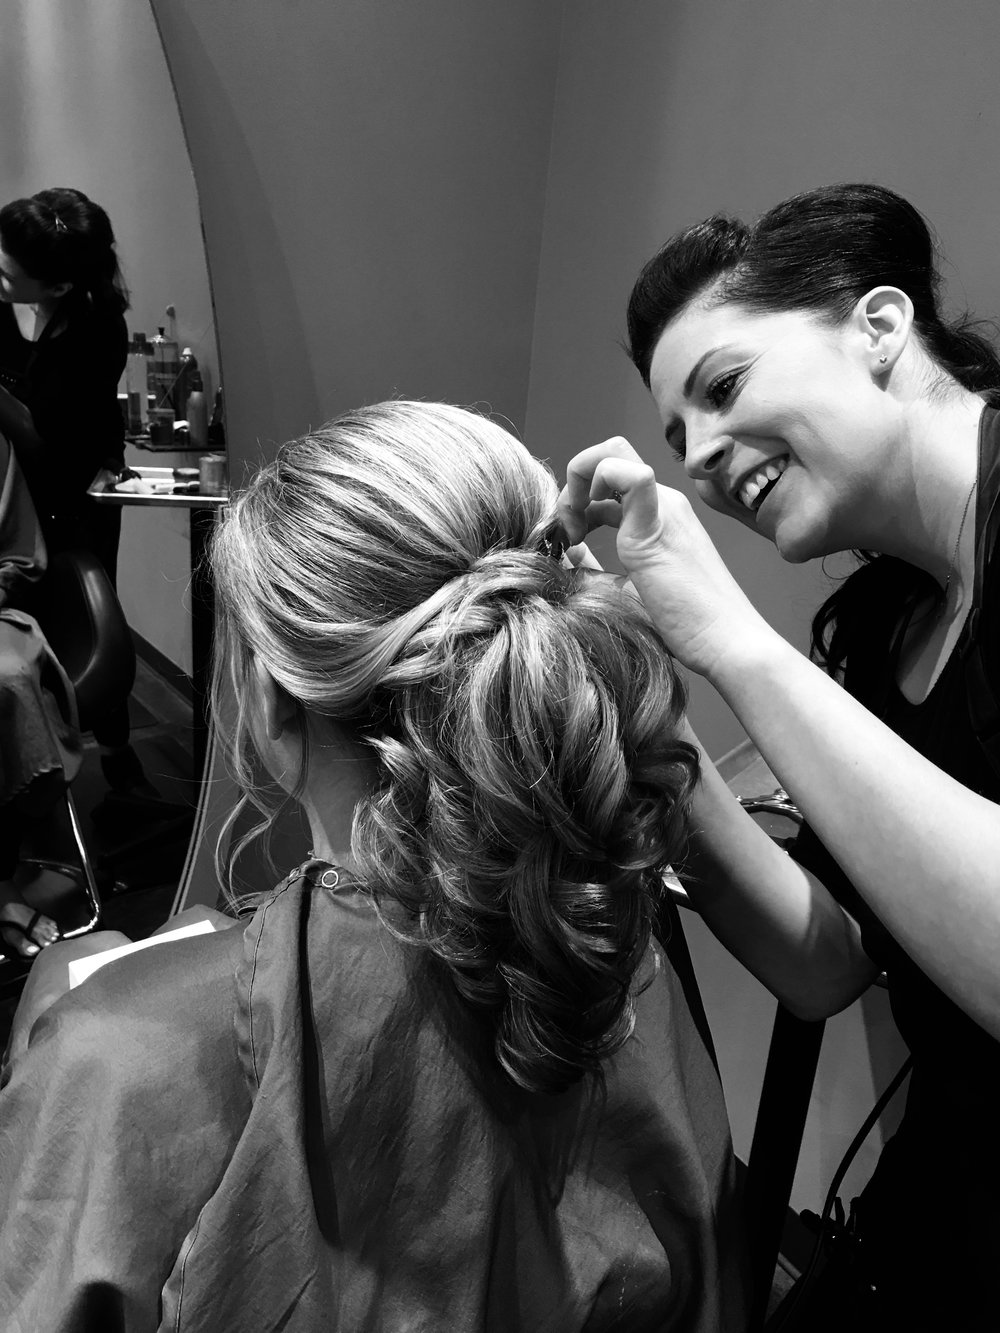 """Janine LeDonne- Master Stylist - """"Creating Beautiful Hair and making clients feel wonderful about themselves means the world to me."""" Janine loves everything about hair. She is a well seasoned Master Stylist.Janine is a listener; she takes time to really listen and understand the wants and needs of every client. Her approach to hair is as thoughtful as it is skillful. Janine is abreast of all the newest trends and busy creating her own.Janine's many talents include precision haircuts with masterful styling, exquisite balayage techniques, and flawless smoothing services. Where Janine truly shines is with beautiful special occasion hair styles. Her talent and skills are truly amazing, and done with the greatest of ease. Janine is a true artist. She specializes in Brides, Wedding parties, Proms and any Occasion that needs an extra special touch. @stylist0784"""